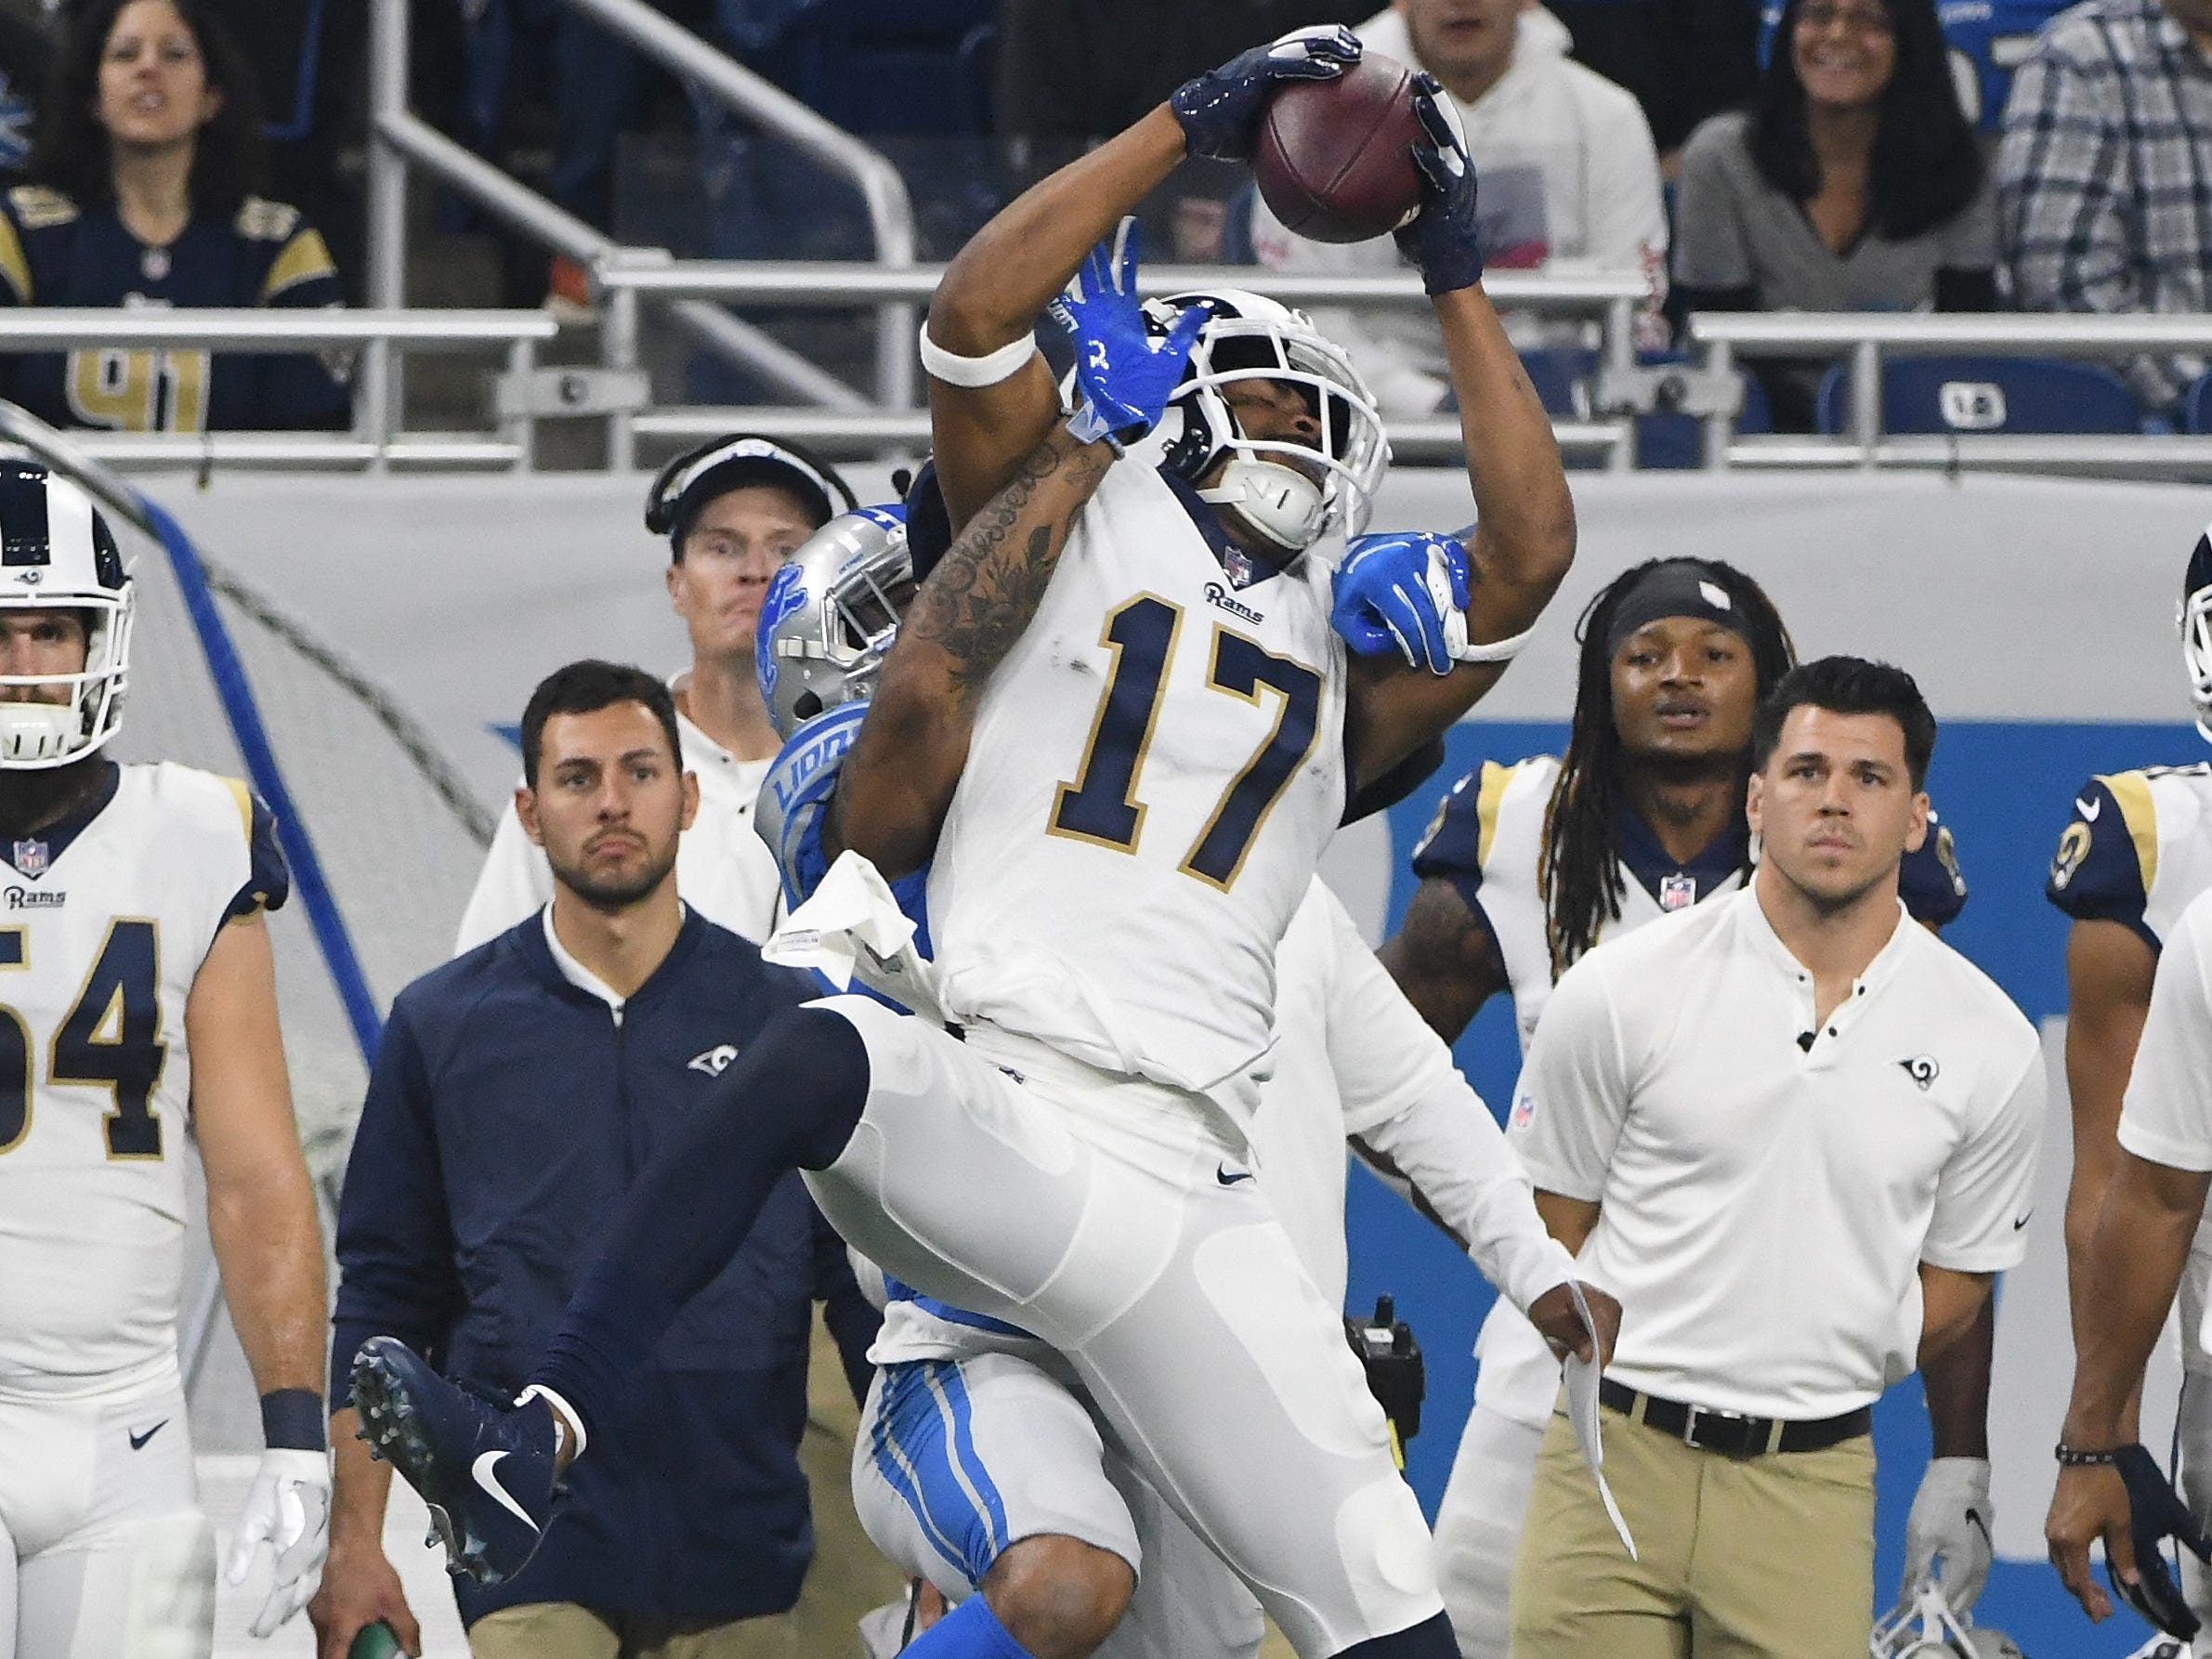 Rams' Robert Woods pulls in a reception in front of Lions' Darius Slay down the sidelines in the first quarter.